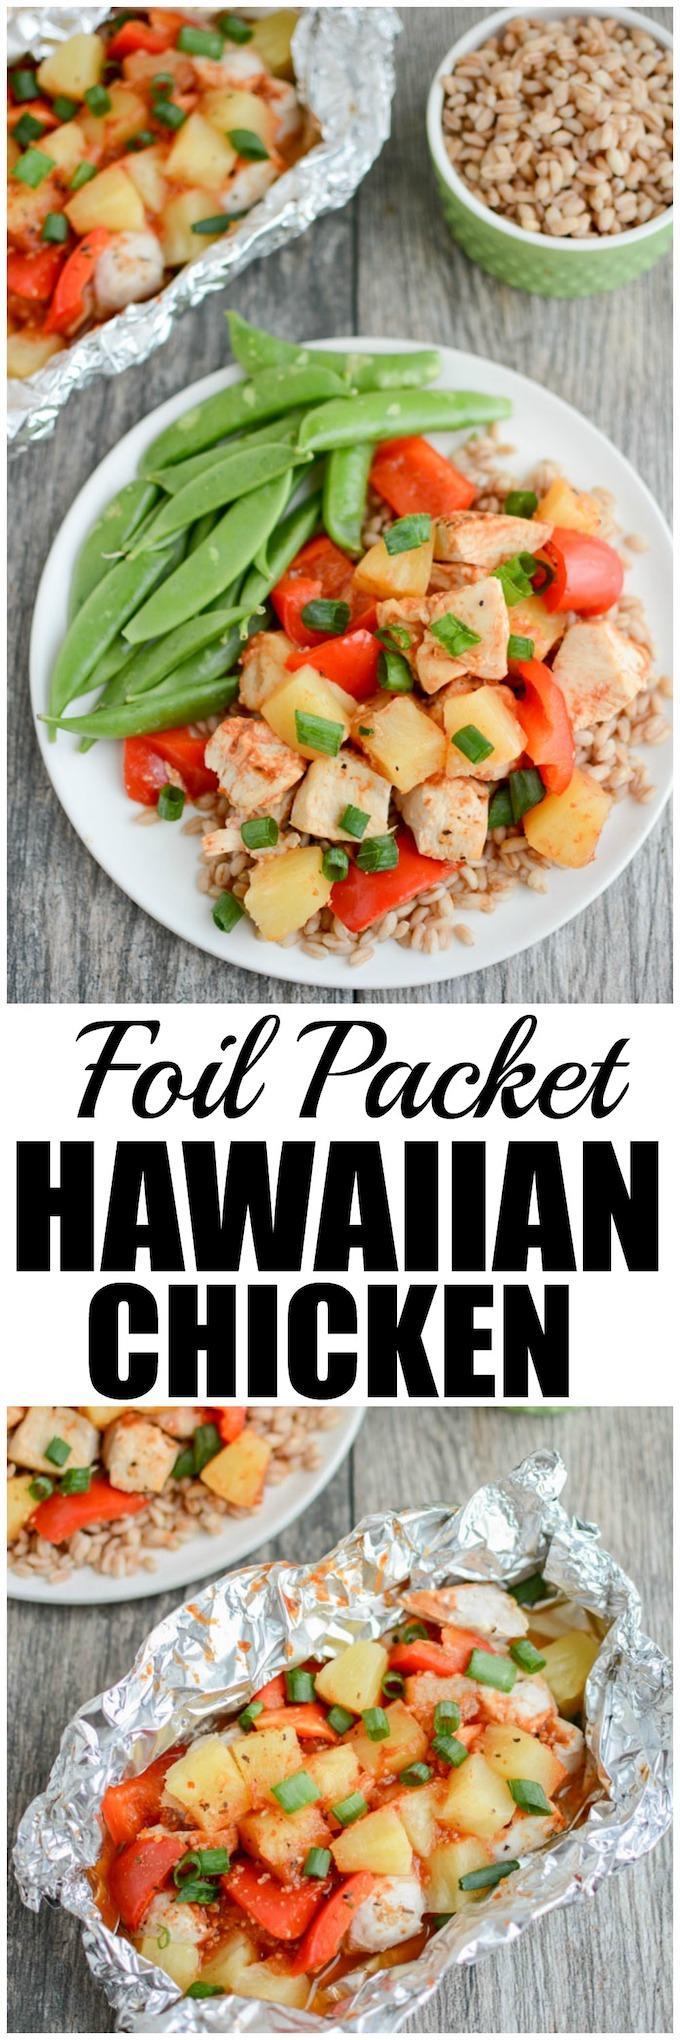 {AD} This Grilled Foil Packet Hawaiian Chicken Recipe is perfect for summer. Assemble the packets quickly, toss them on the grill and dinner is served! Plus, cleanup is a breeze and the leftovers are great for lunch!